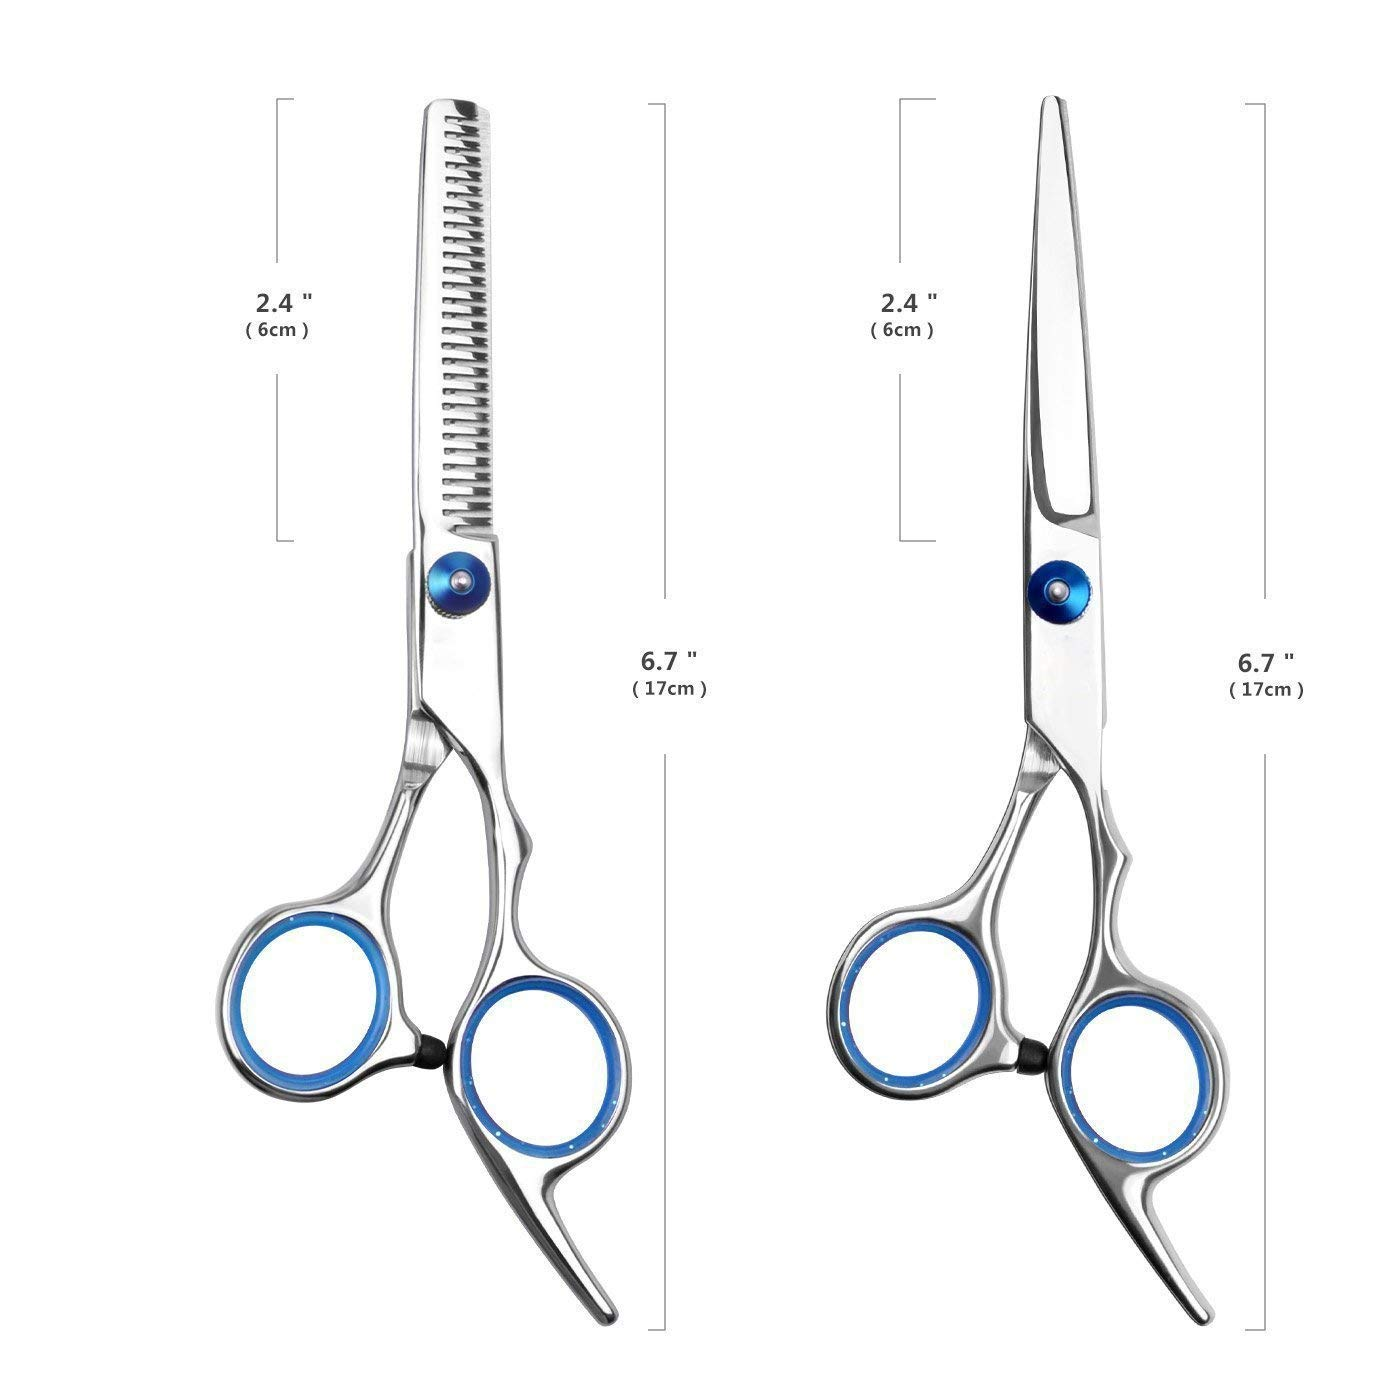 Hair Cutting Scissors Shears and Barber Thinning Salon Razor Edge Tools Set Mustache Scissors with Fine Adjustment Screw Japanese Stainless Steel Kit-by Mxcudu (Sliver)